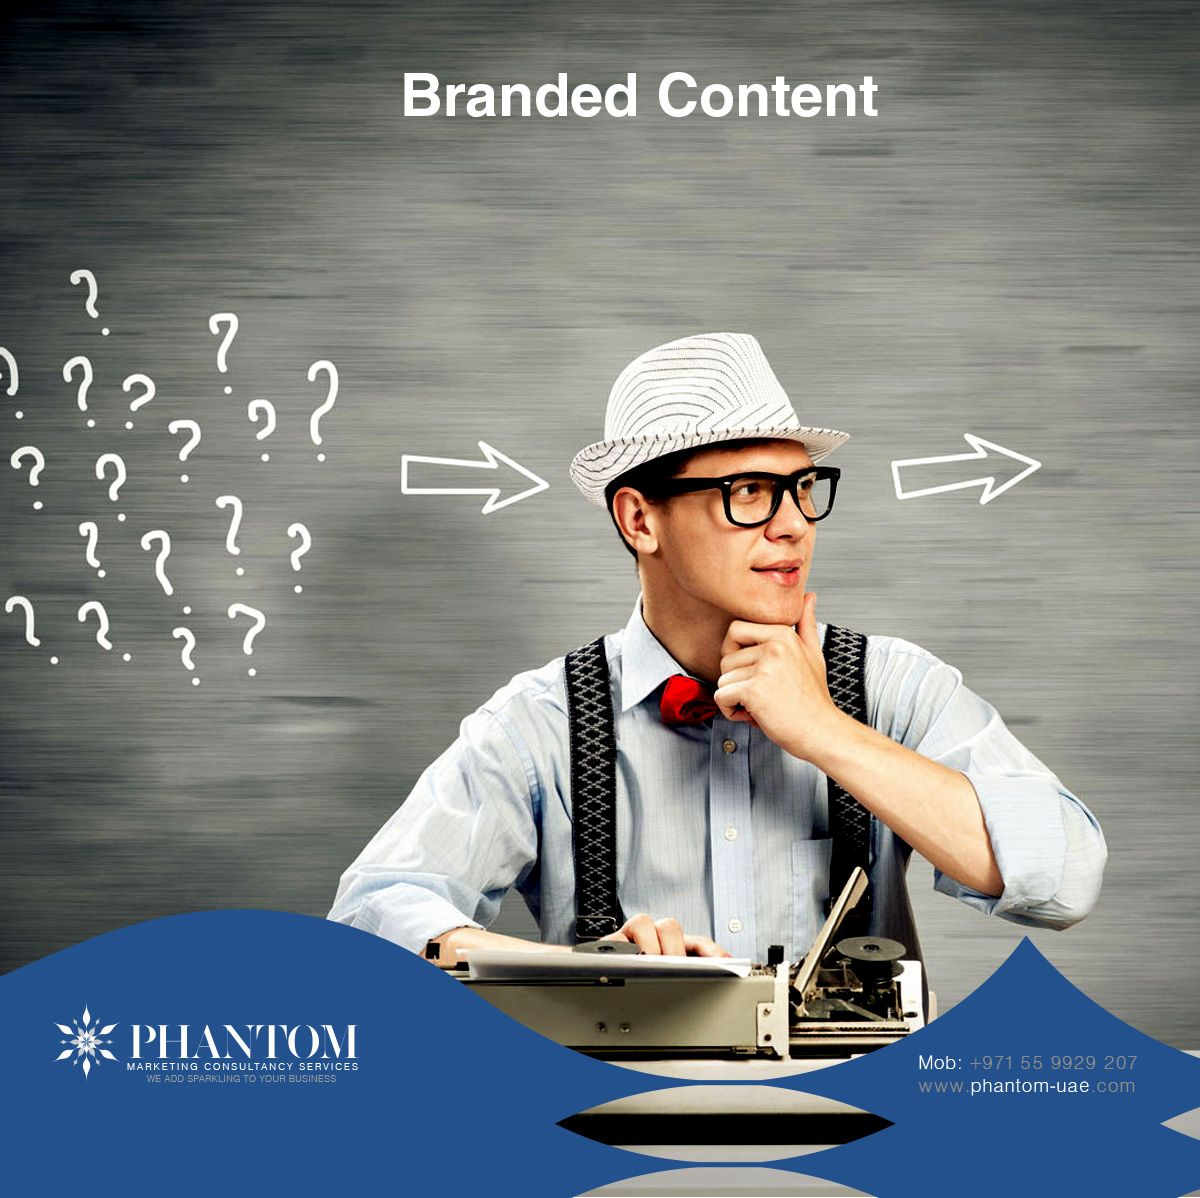 We provide a truly branded content. Choose us for your best!  http://phantom-uae.com/#services